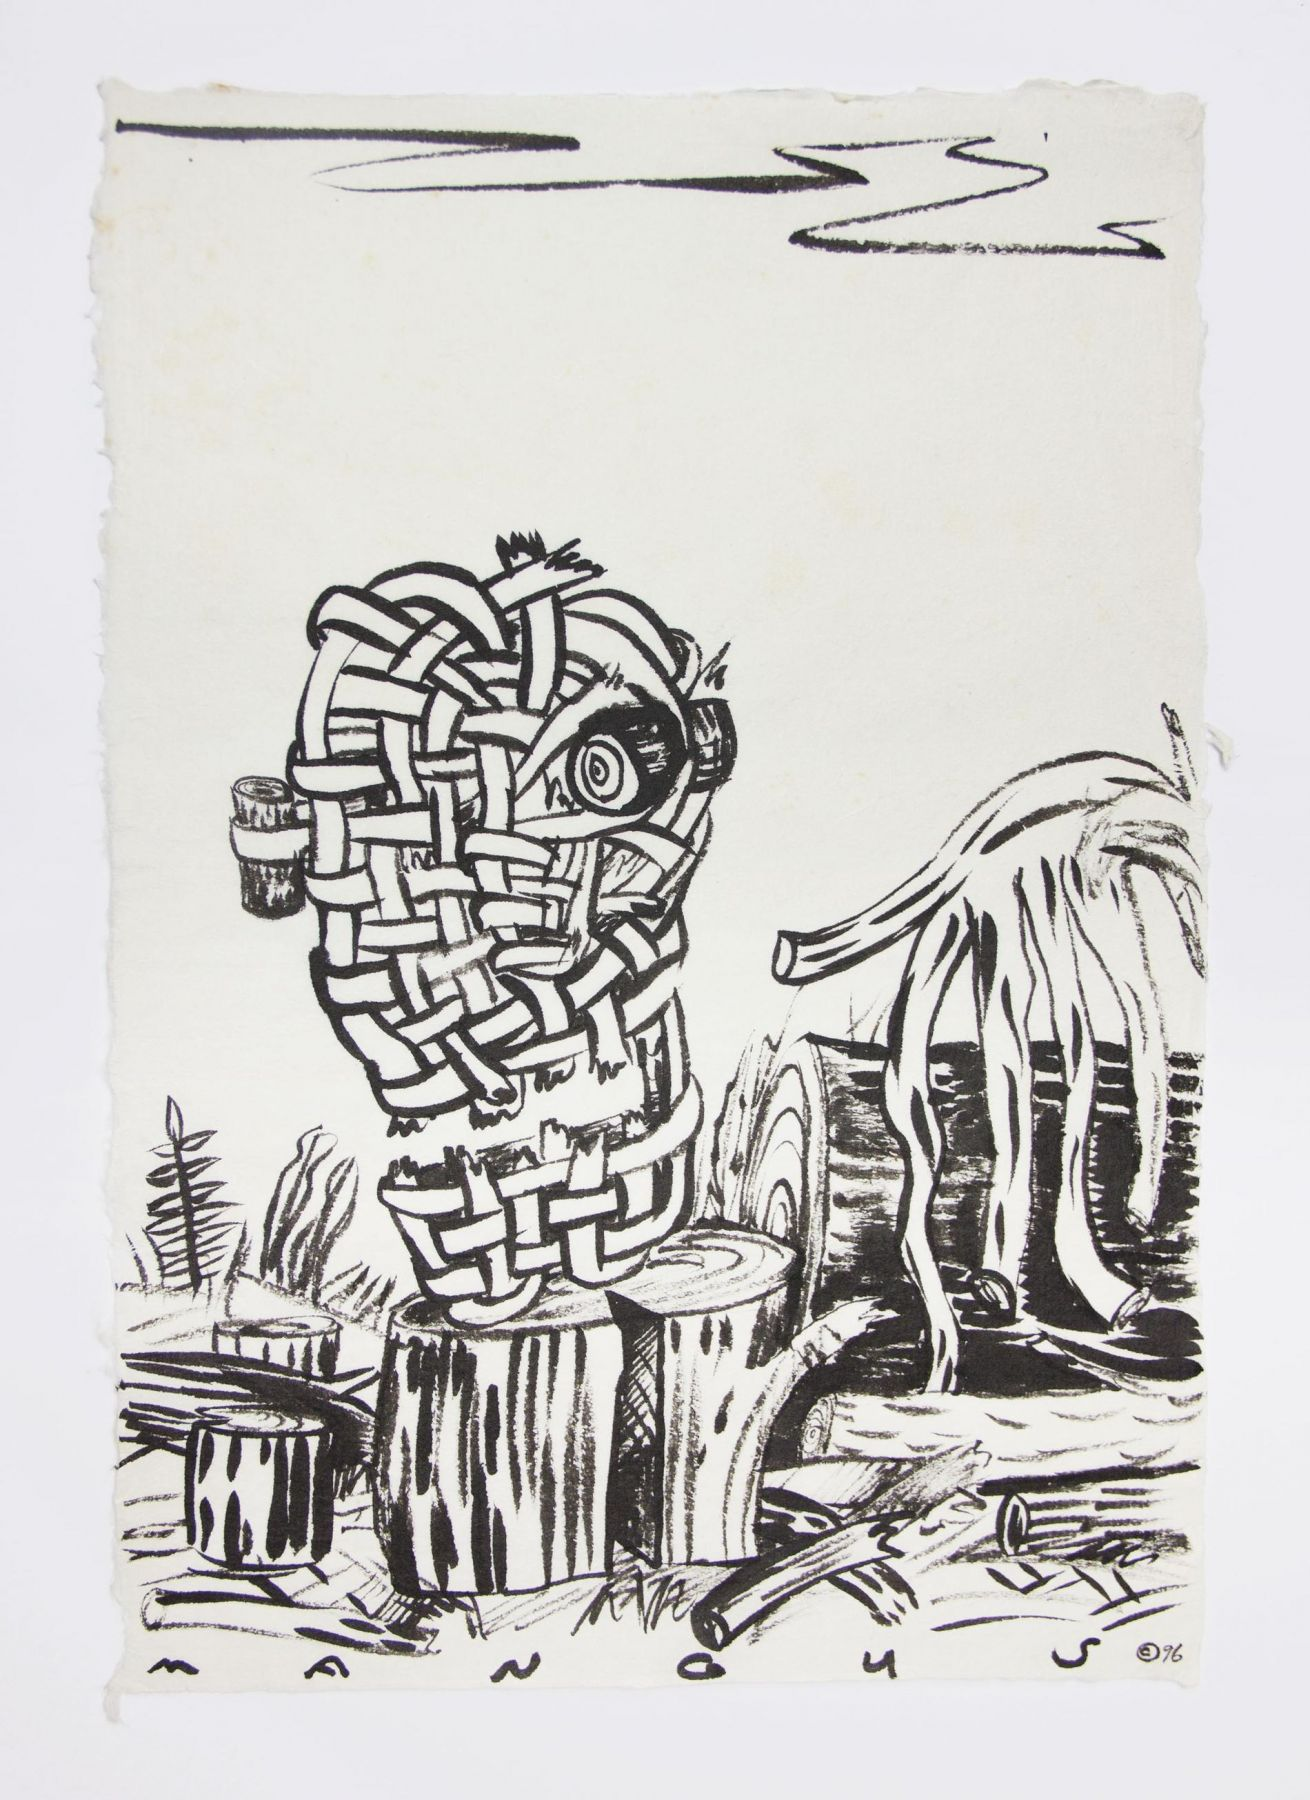 , Basket Head, 1988, Ink on mulberry paper, 17 x 12 1/2 in.